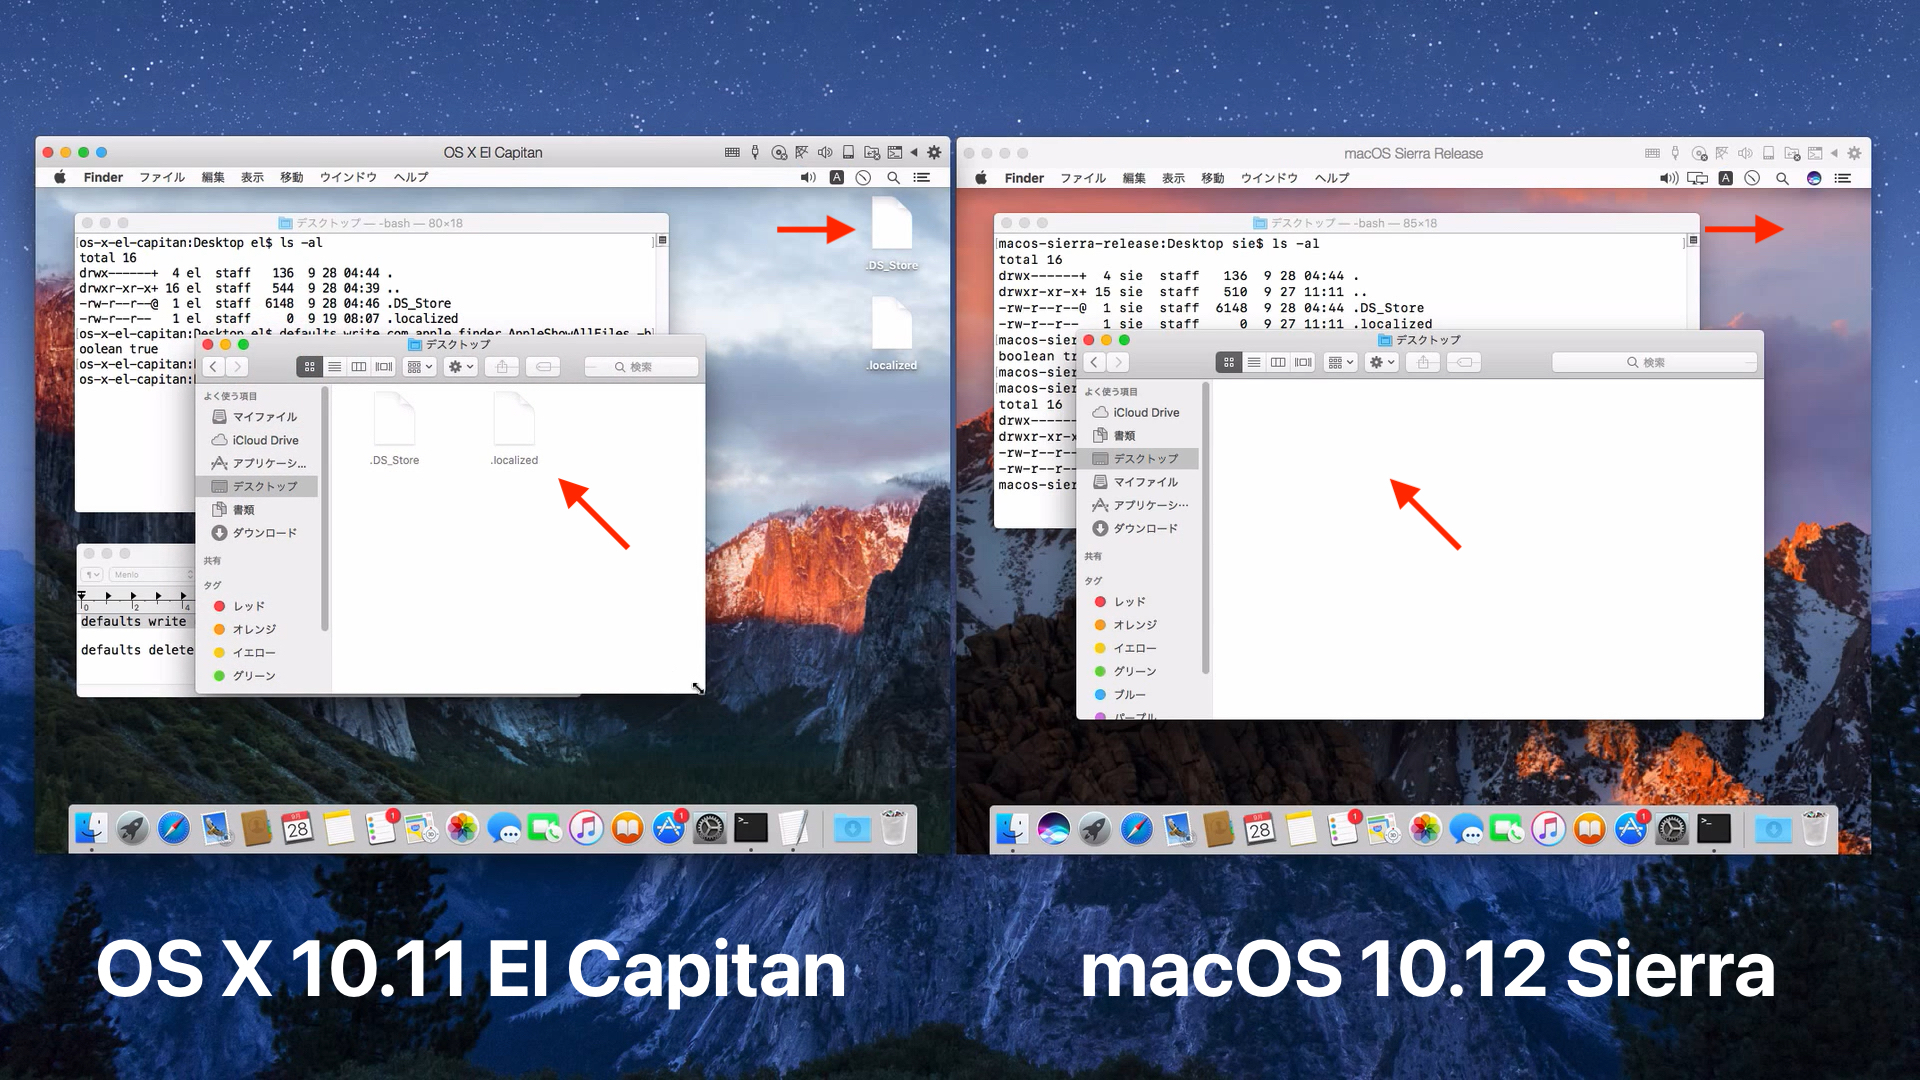 「.DS_Store」on OS X 10.11 El Capitan and macOS 10.12 Sierra